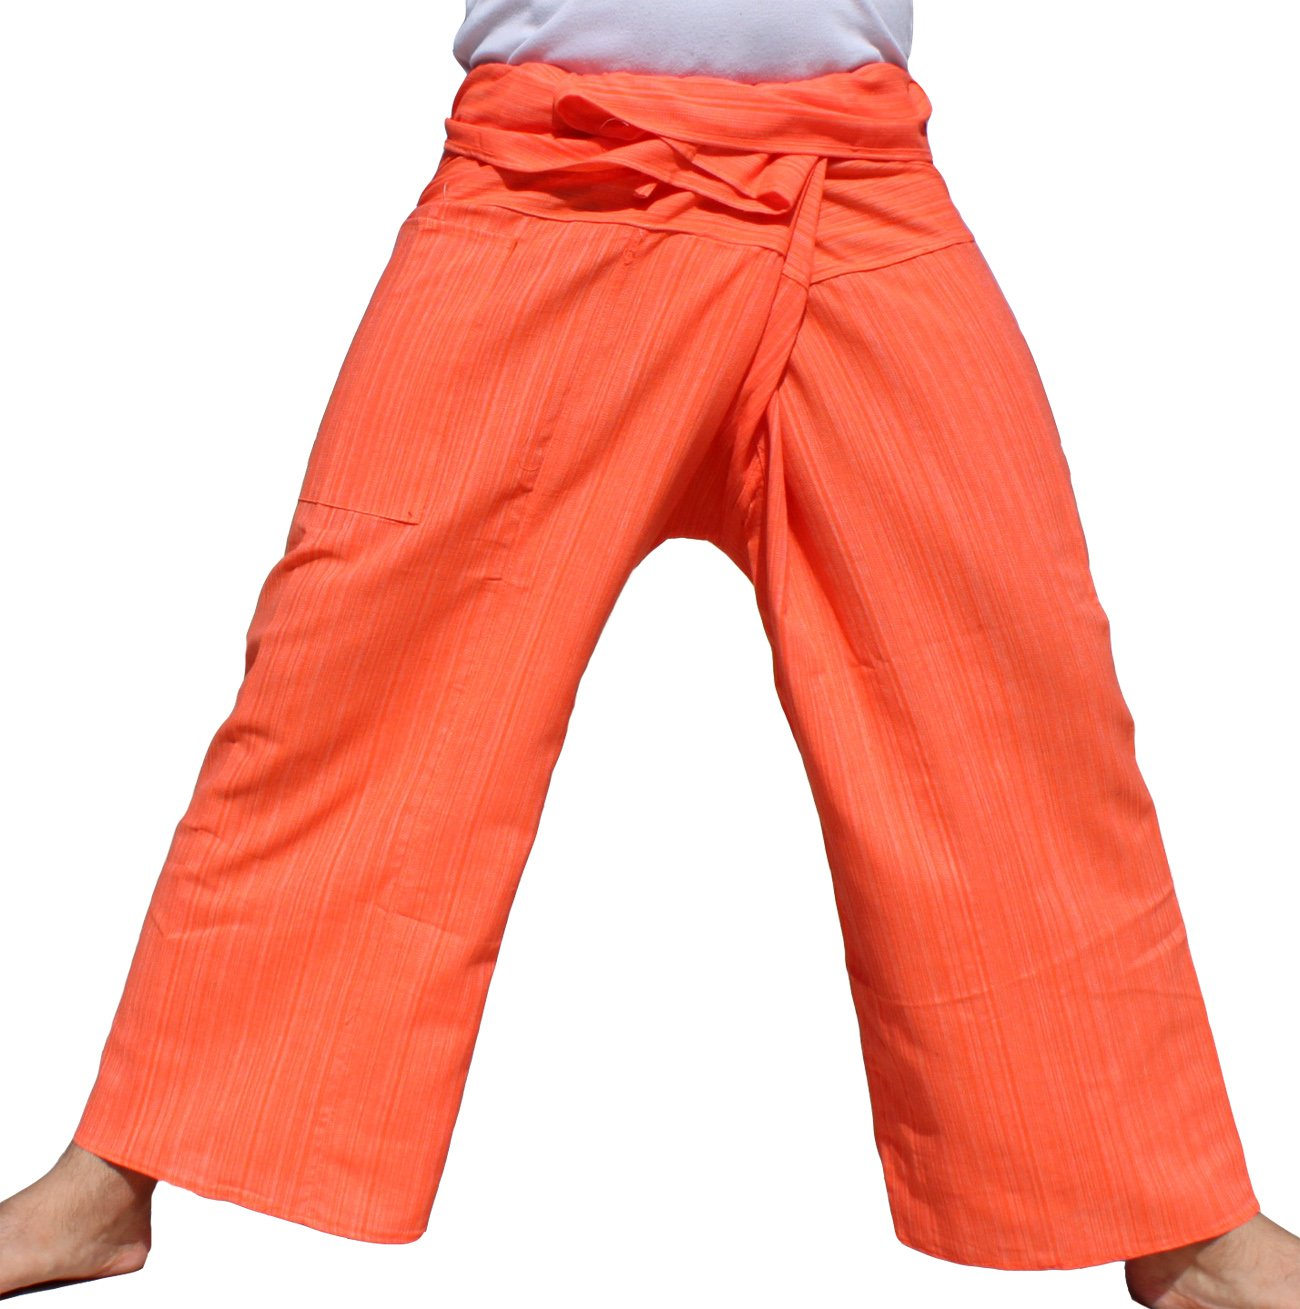 RaanPahMuang Light Striped Cotton Tall Thai Fisherman Wrap Pants Plus, XX-Large, Portland Orange by RaanPahMuang